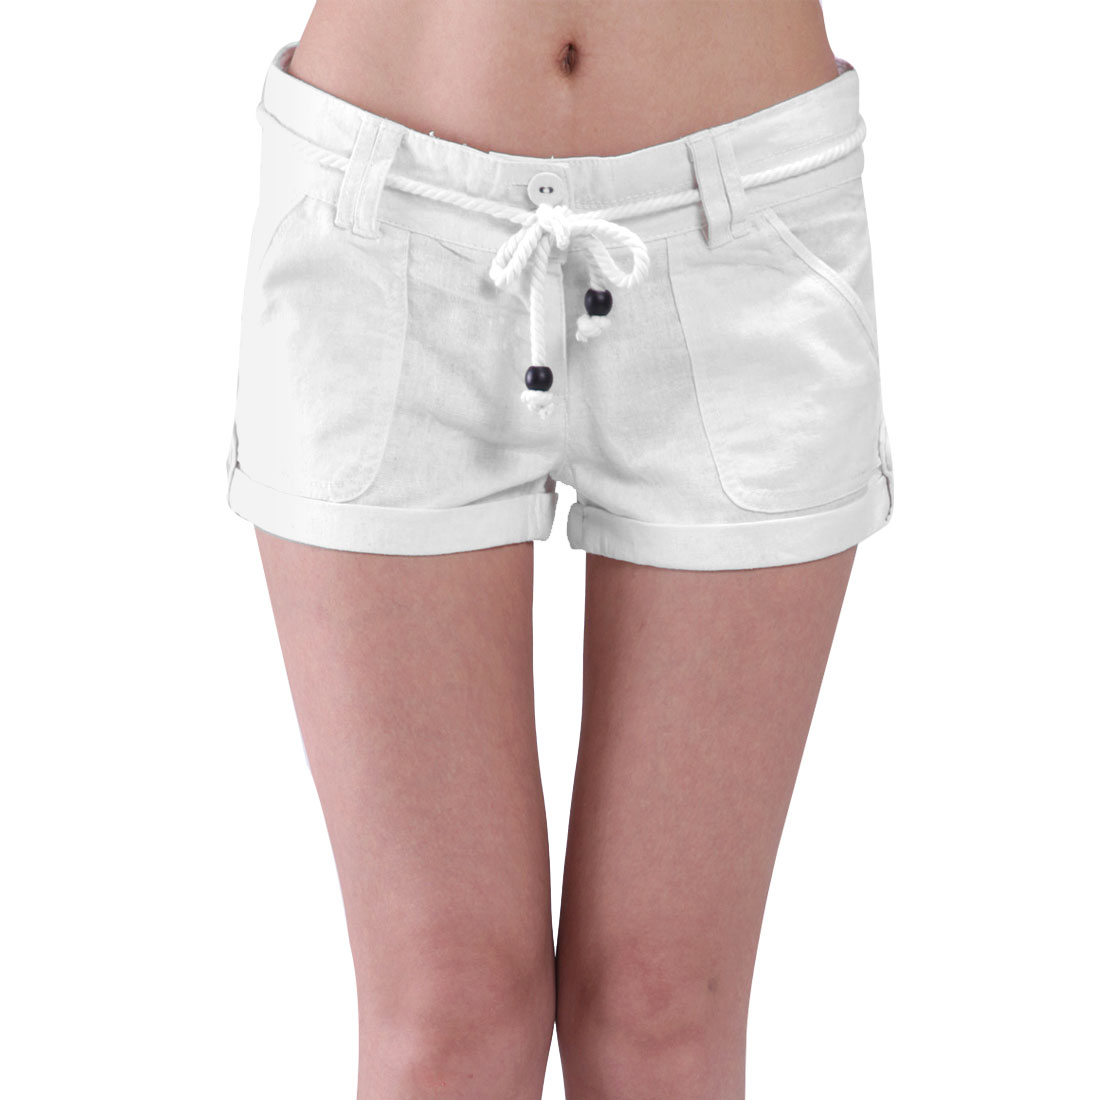 Summer Casual Low Waist Slanting Pockets Zip Short Pants White L for Women